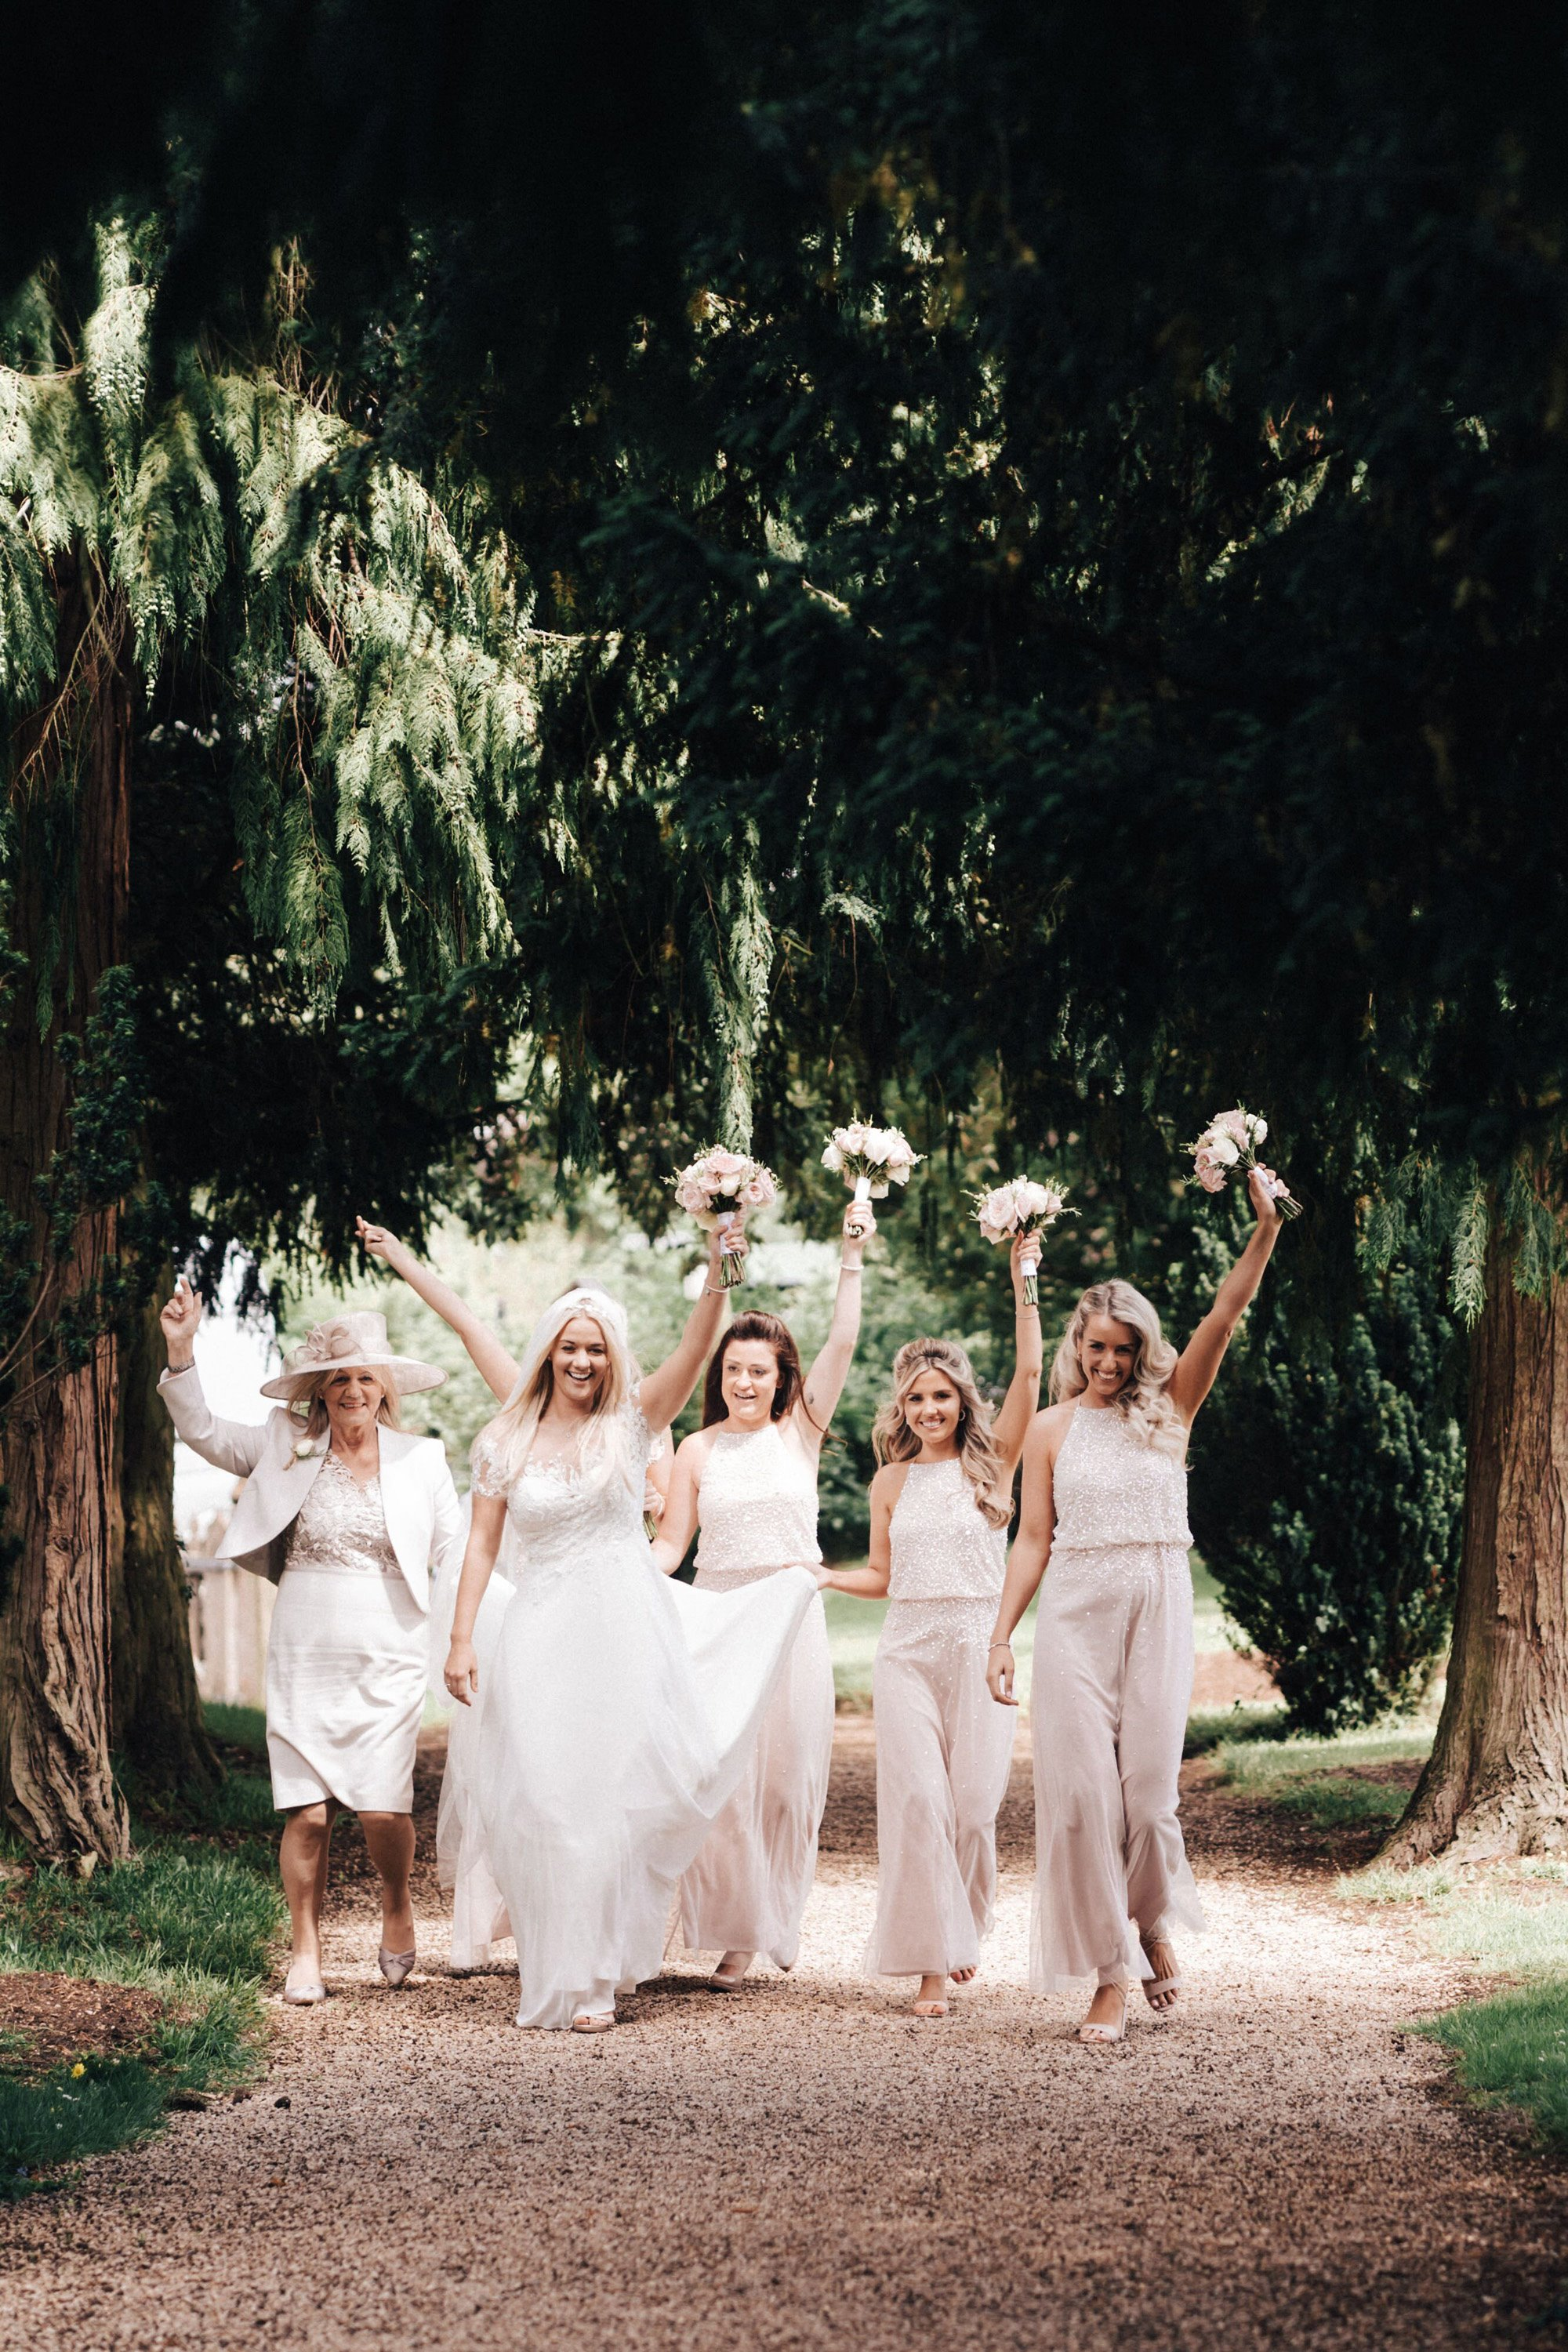 Bridesmaids in pale pink holding bouquets above their heads make their way along the tree lined path to Elmore church for the wedding